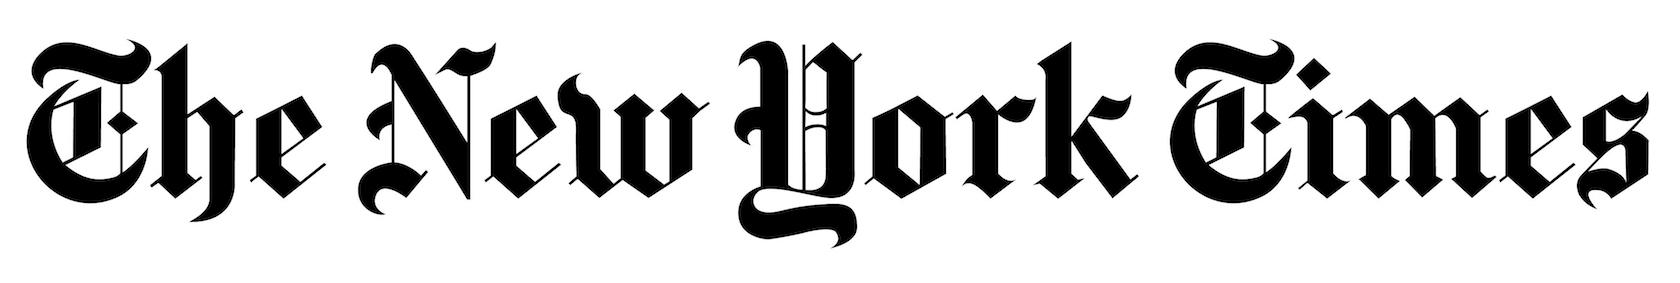 Blackletter typeface styles are popular for newspaper titles.